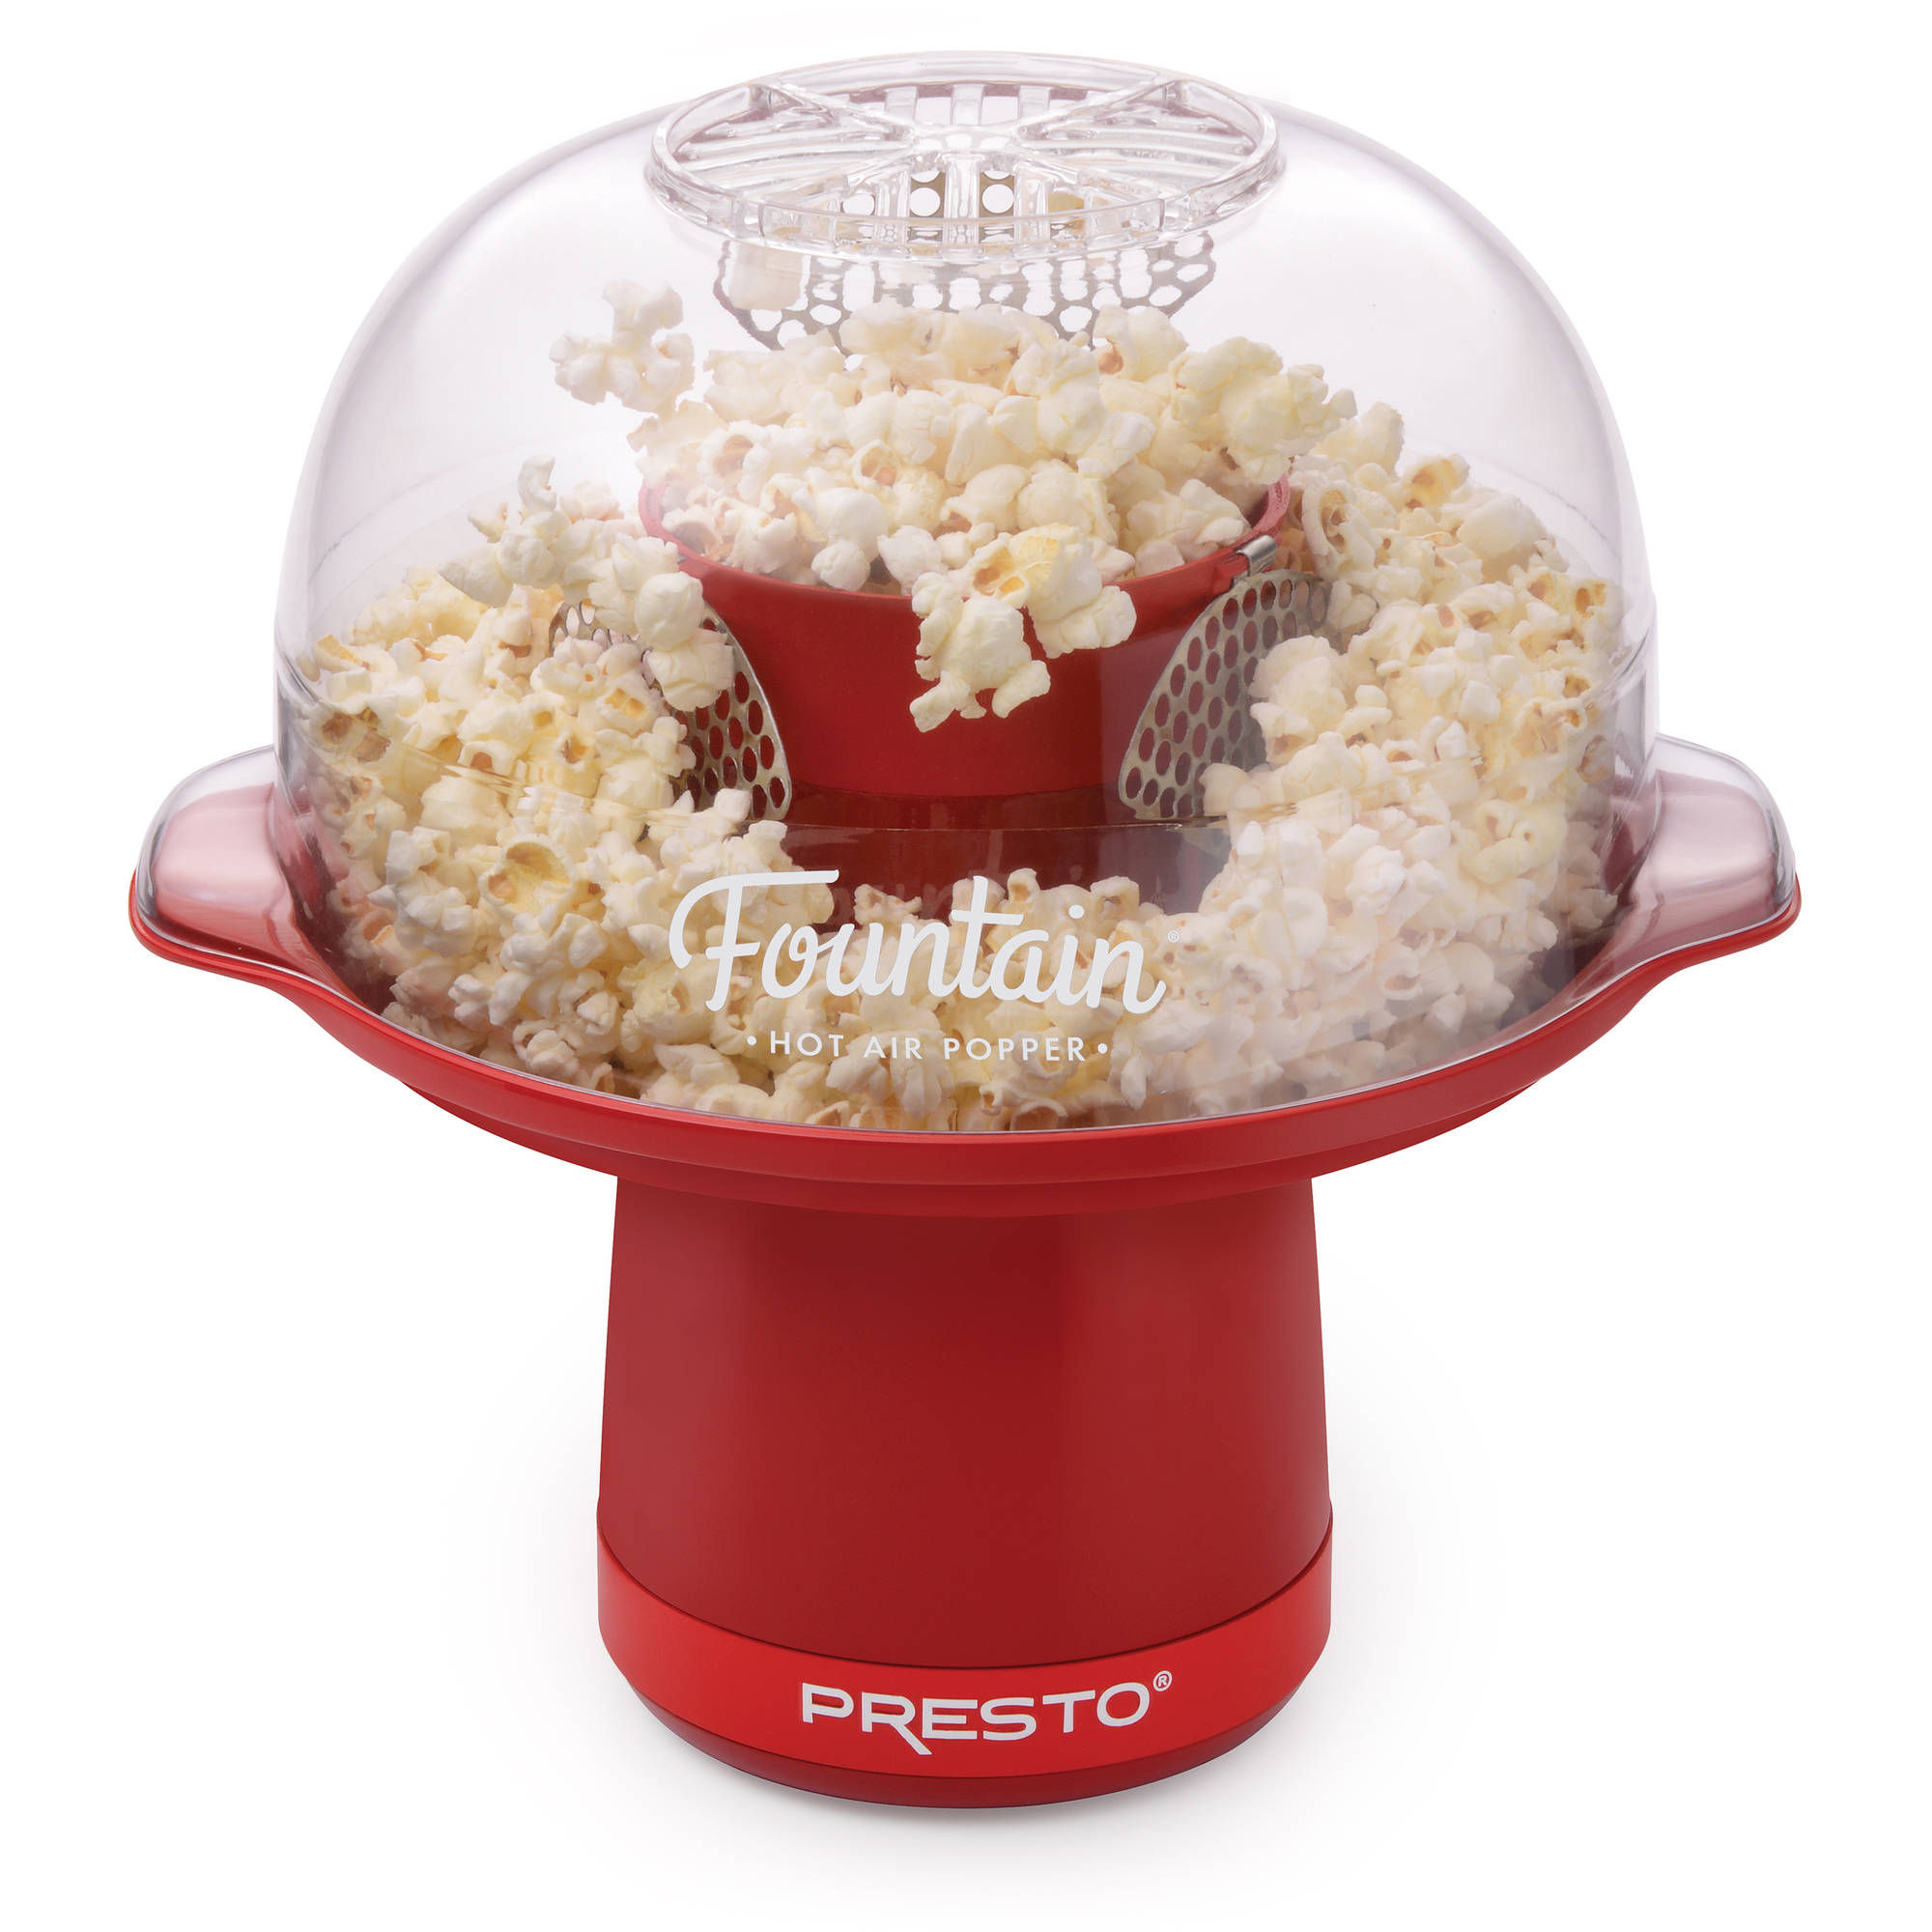 Presto Fountain Hot Air Popper, Red